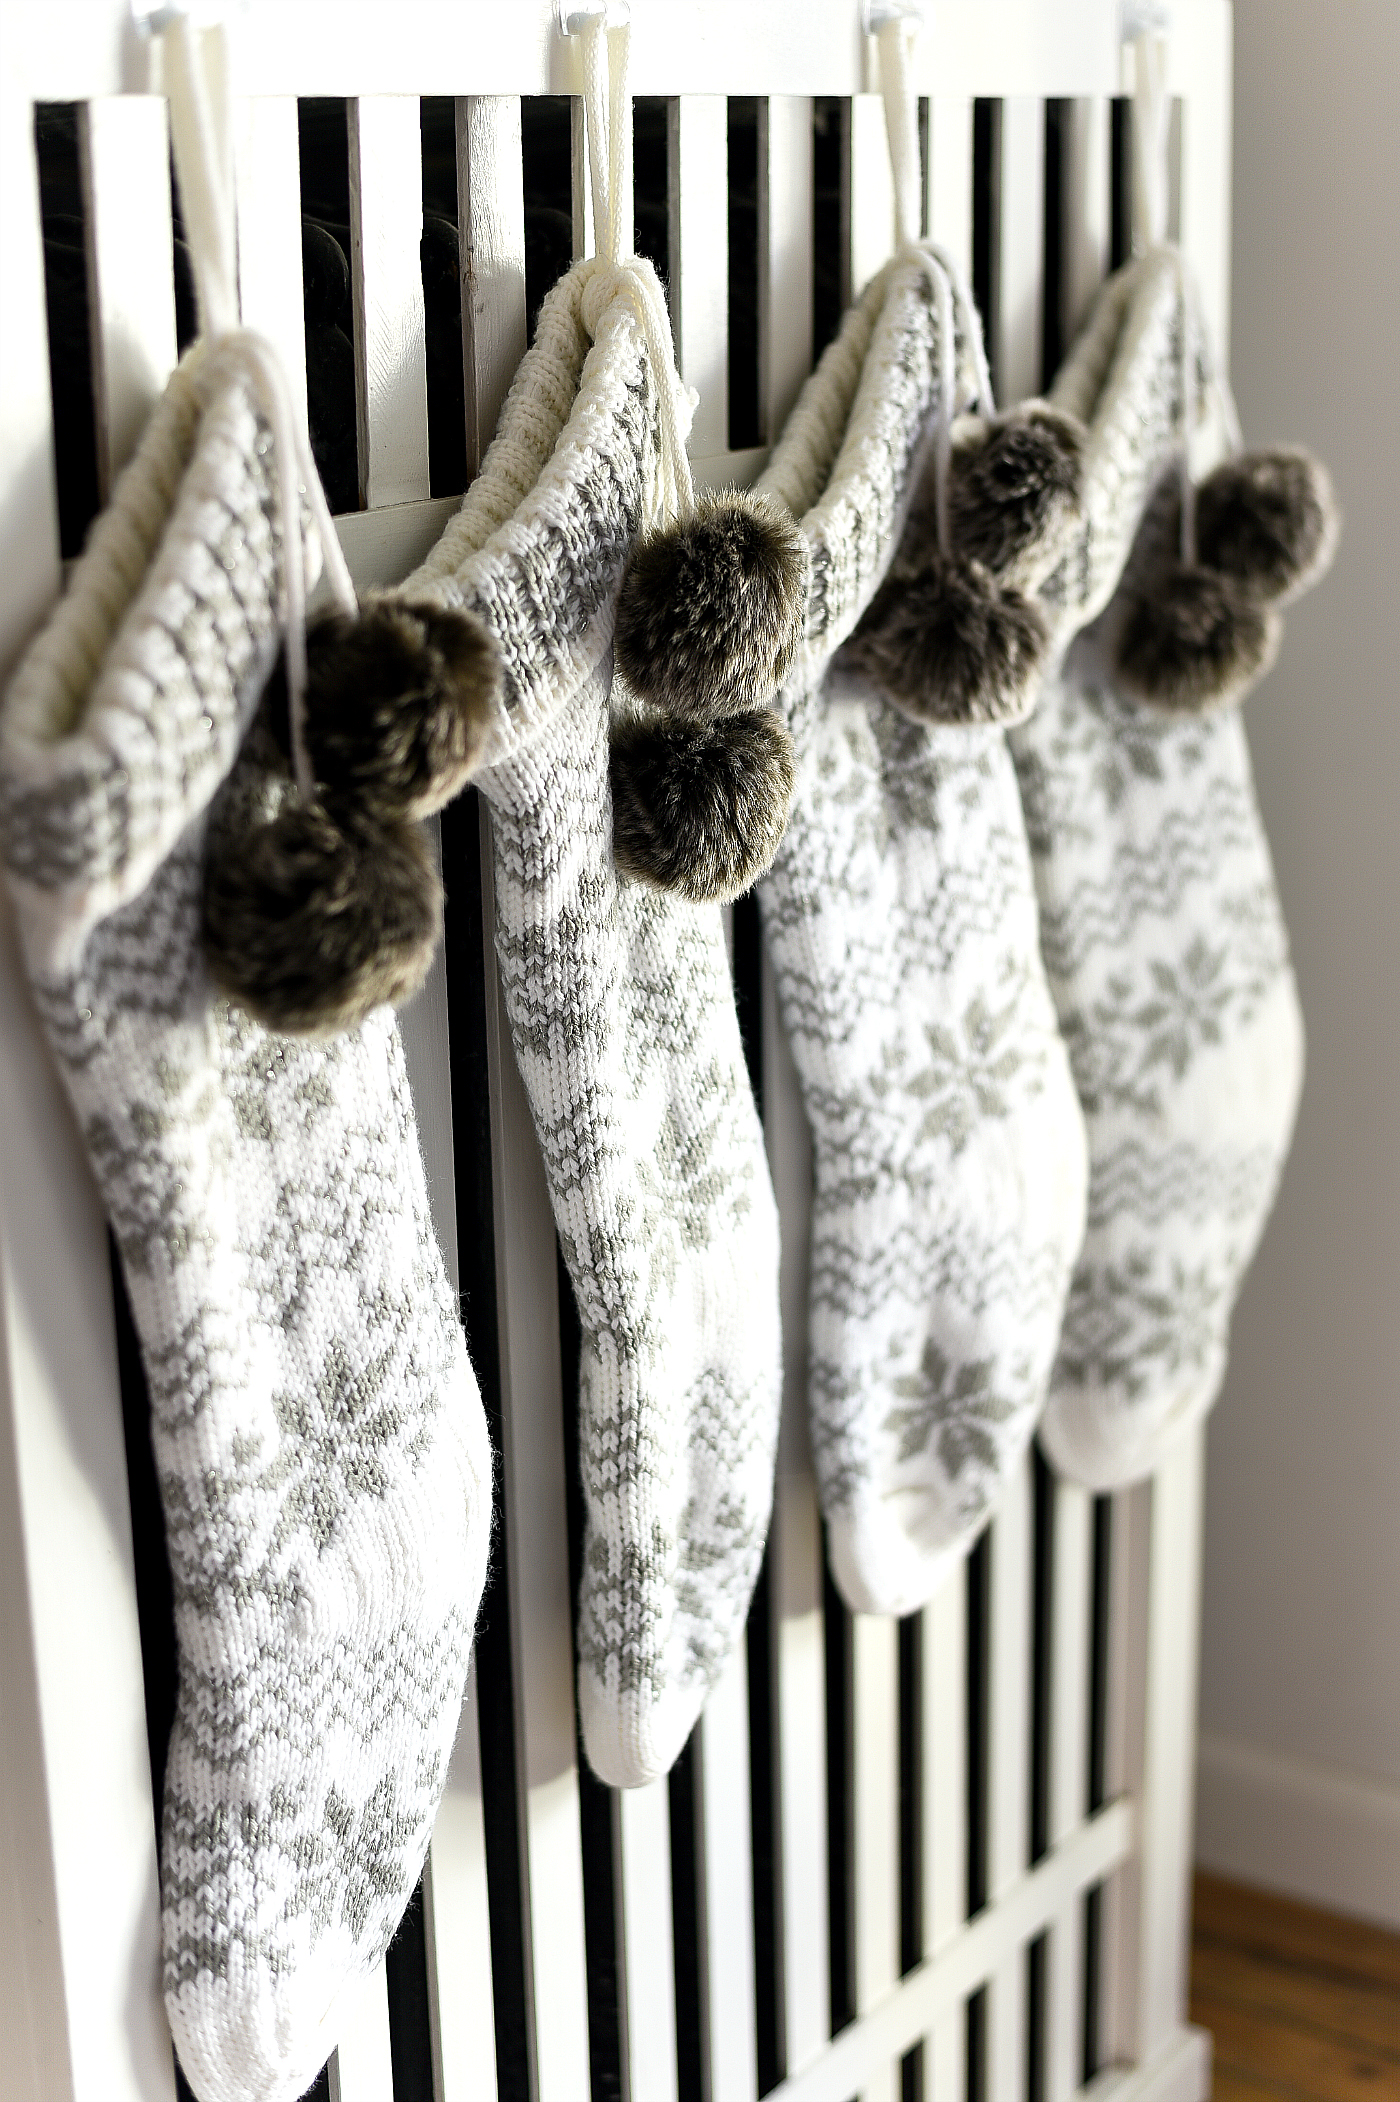 Knit Stockings - Sweater stockings - Target Knit Christmas Stockings - Gray and White Christmas Sweater stockings